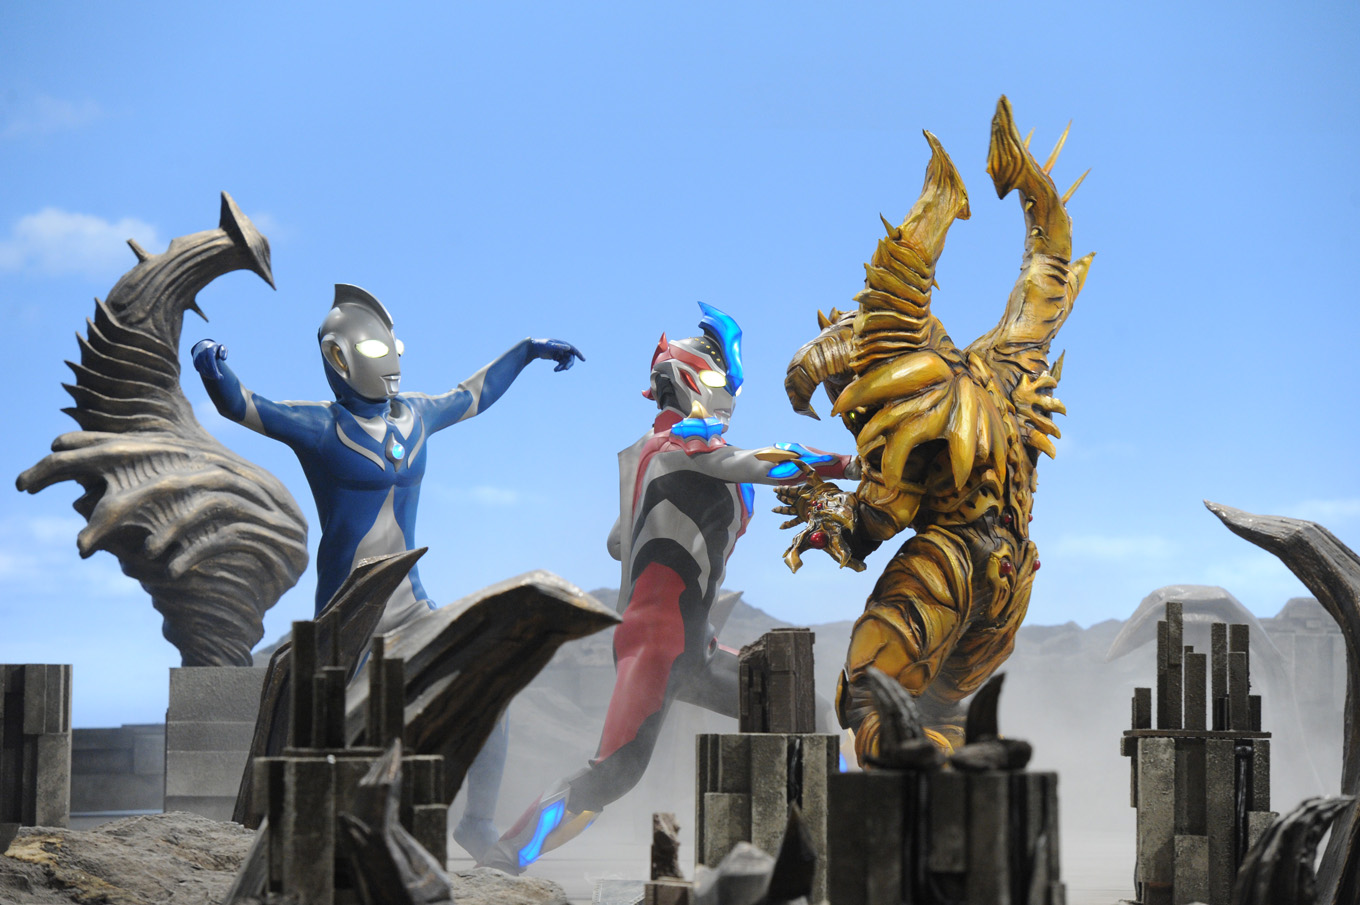 Ultraman Ginga S The Movie Will Give Away Over 400000 Worth Of Toys besides Re Zero Anime together with Sony Xperia Xz1 Black Uk Ie 302560 as well New York The Golden Ticket also Movies. on movie ticket